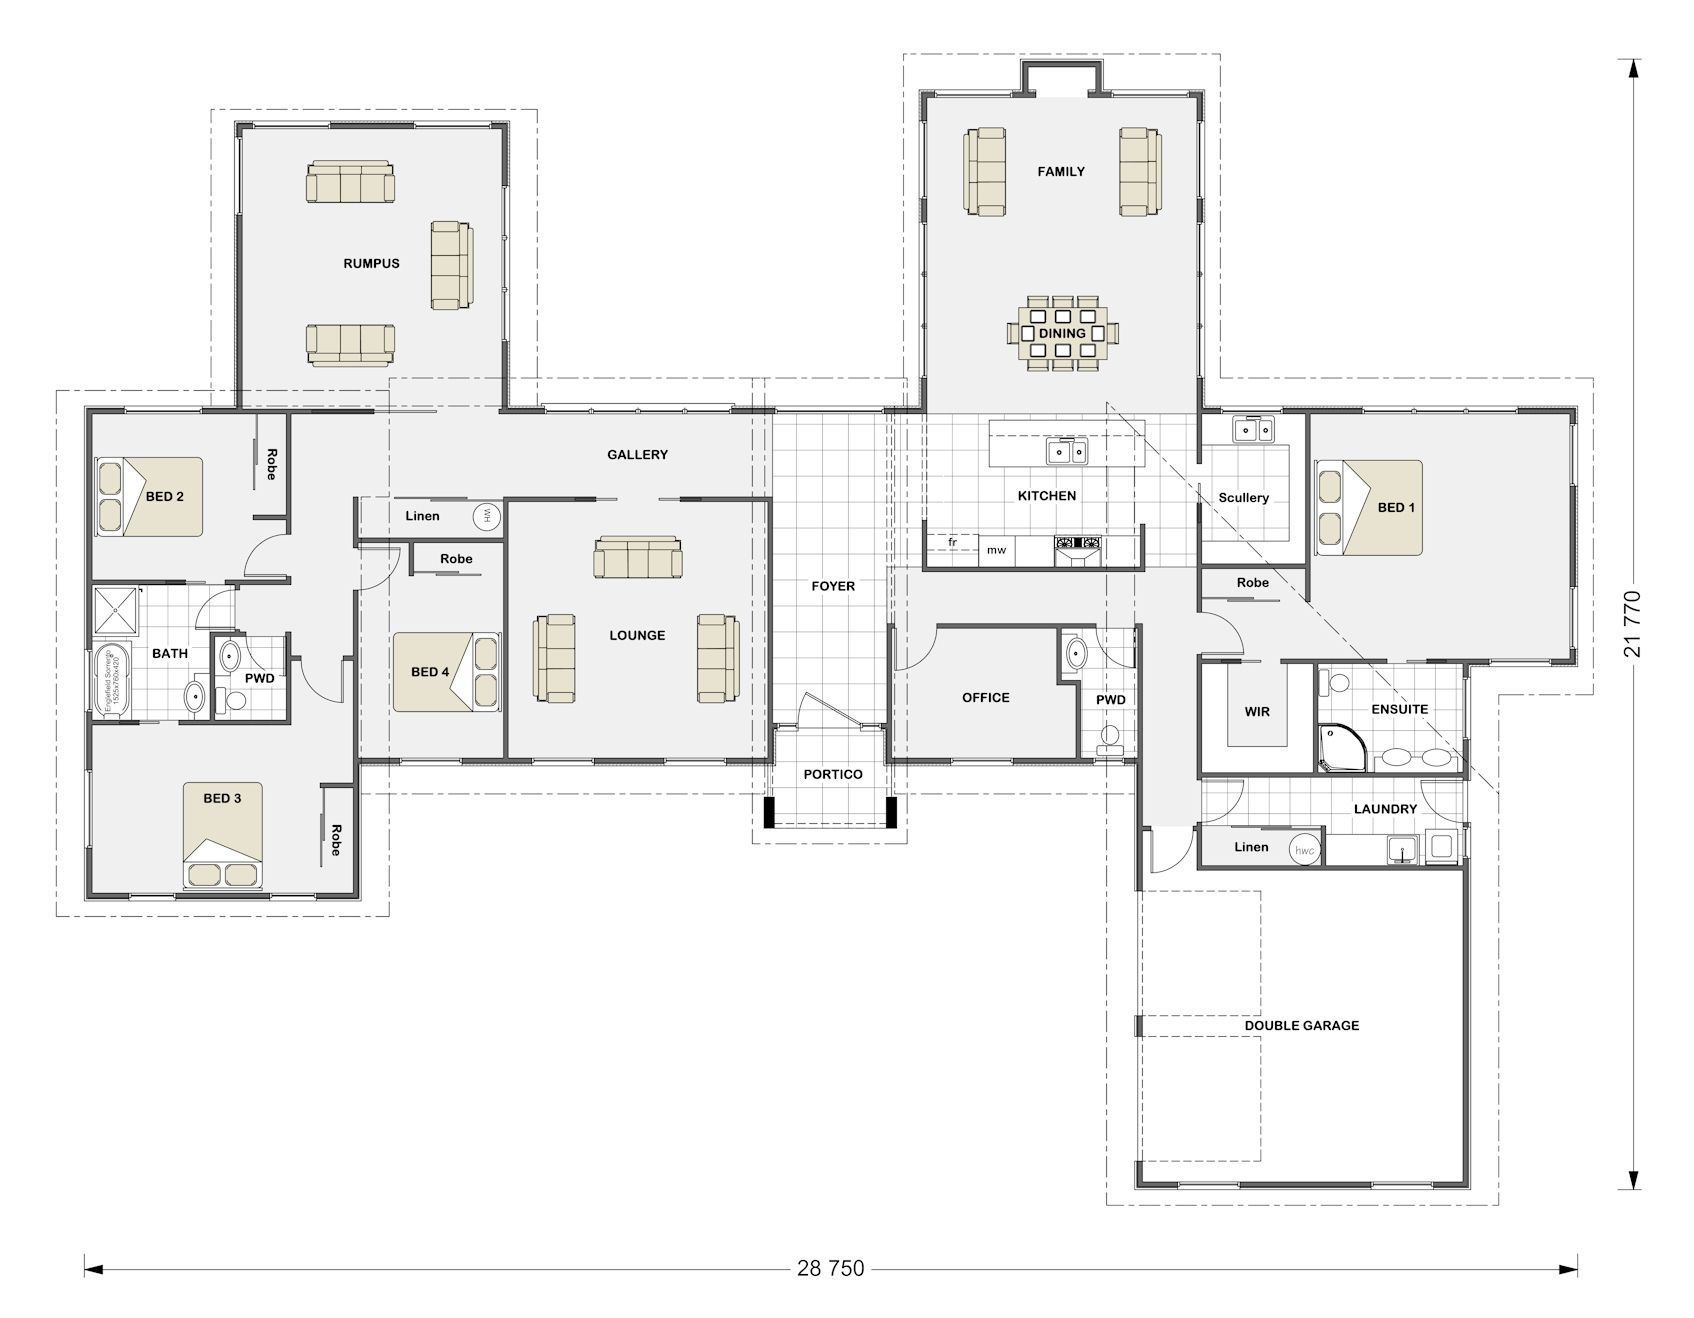 House designs floor plans new zealand house plans and for Contemporary house designs nz